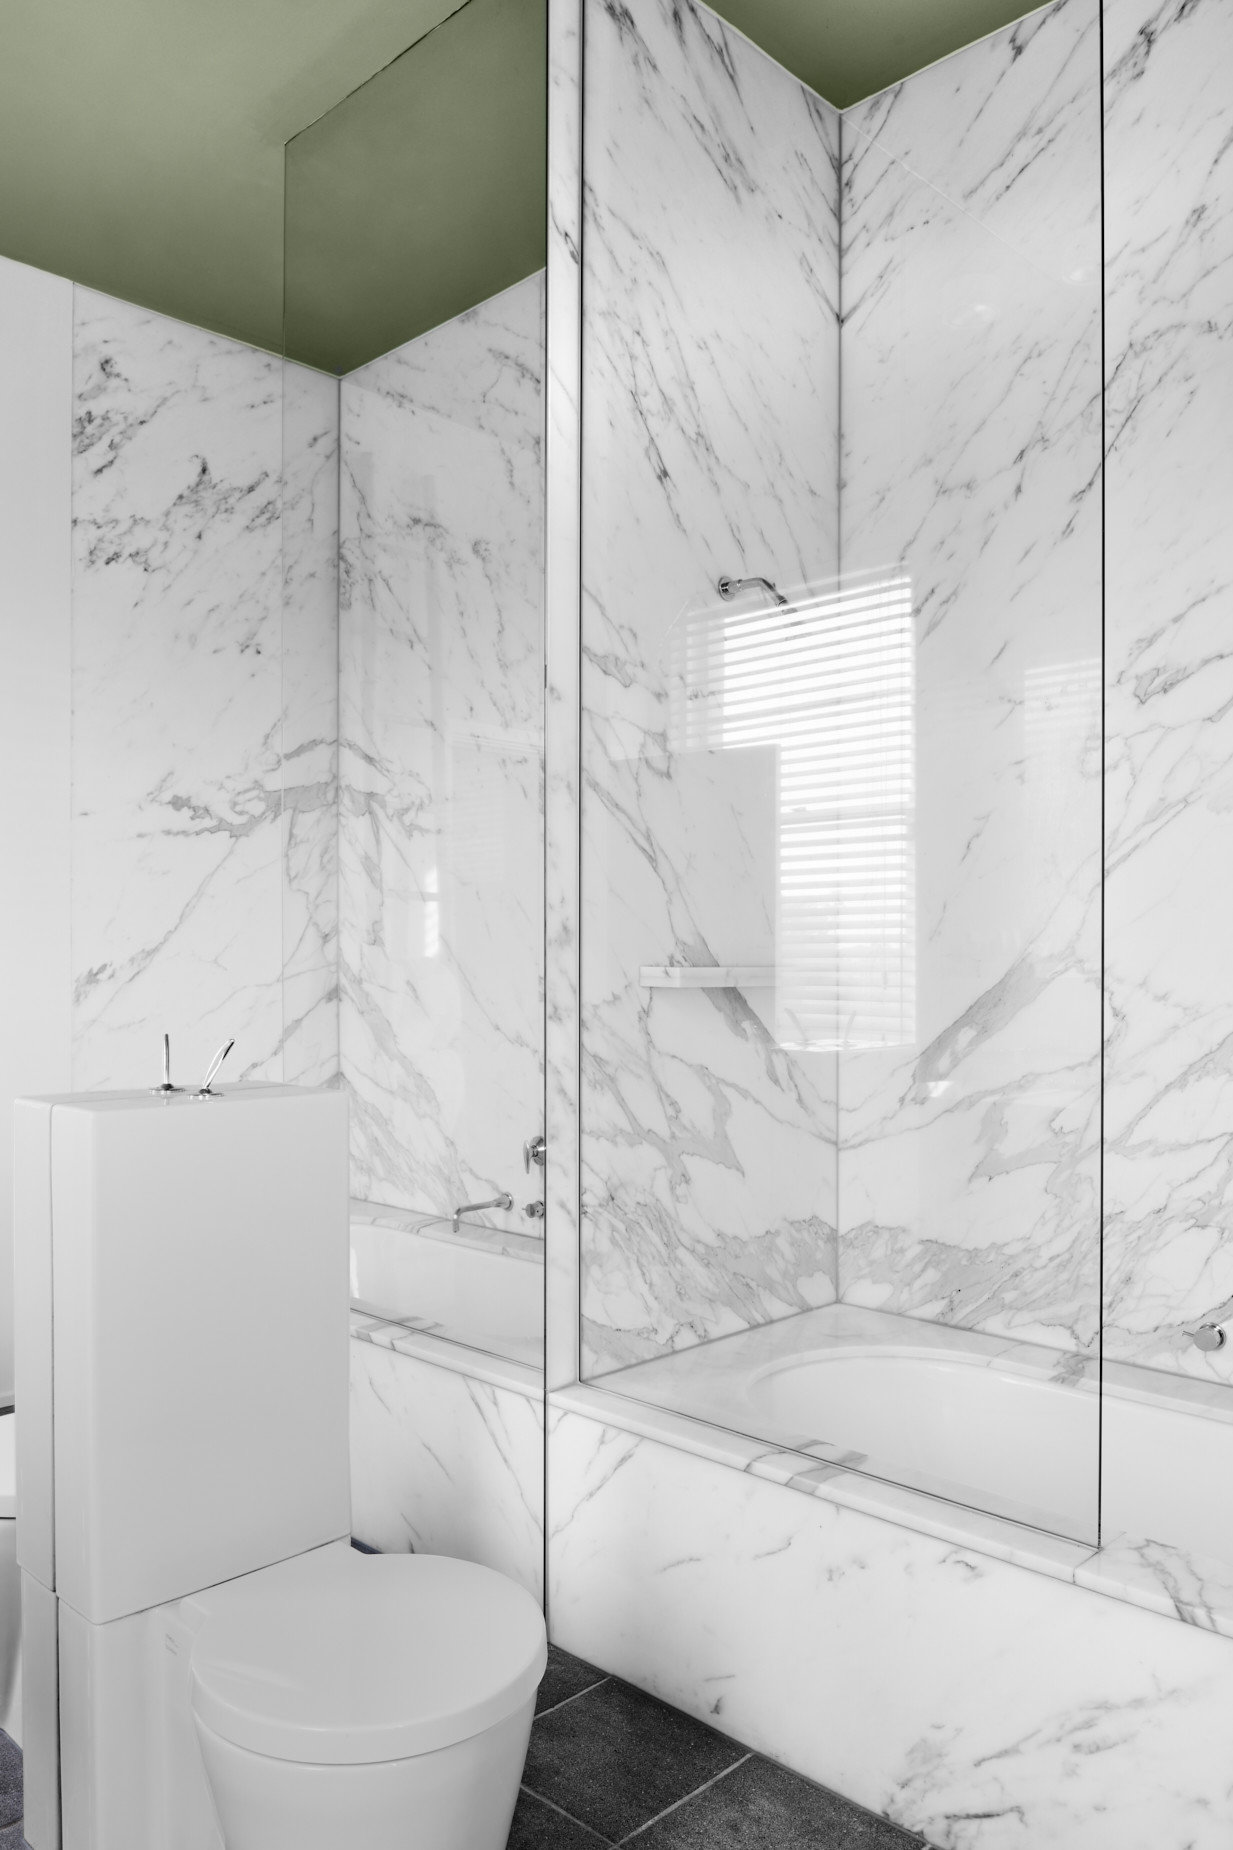 Australia Hotels Melbourne indoor bathroom black and white room Architecture wall structure plumbing fixture interior design glass floor tile monochrome product design Design tap angle monochrome photography daylighting ceiling shower flooring